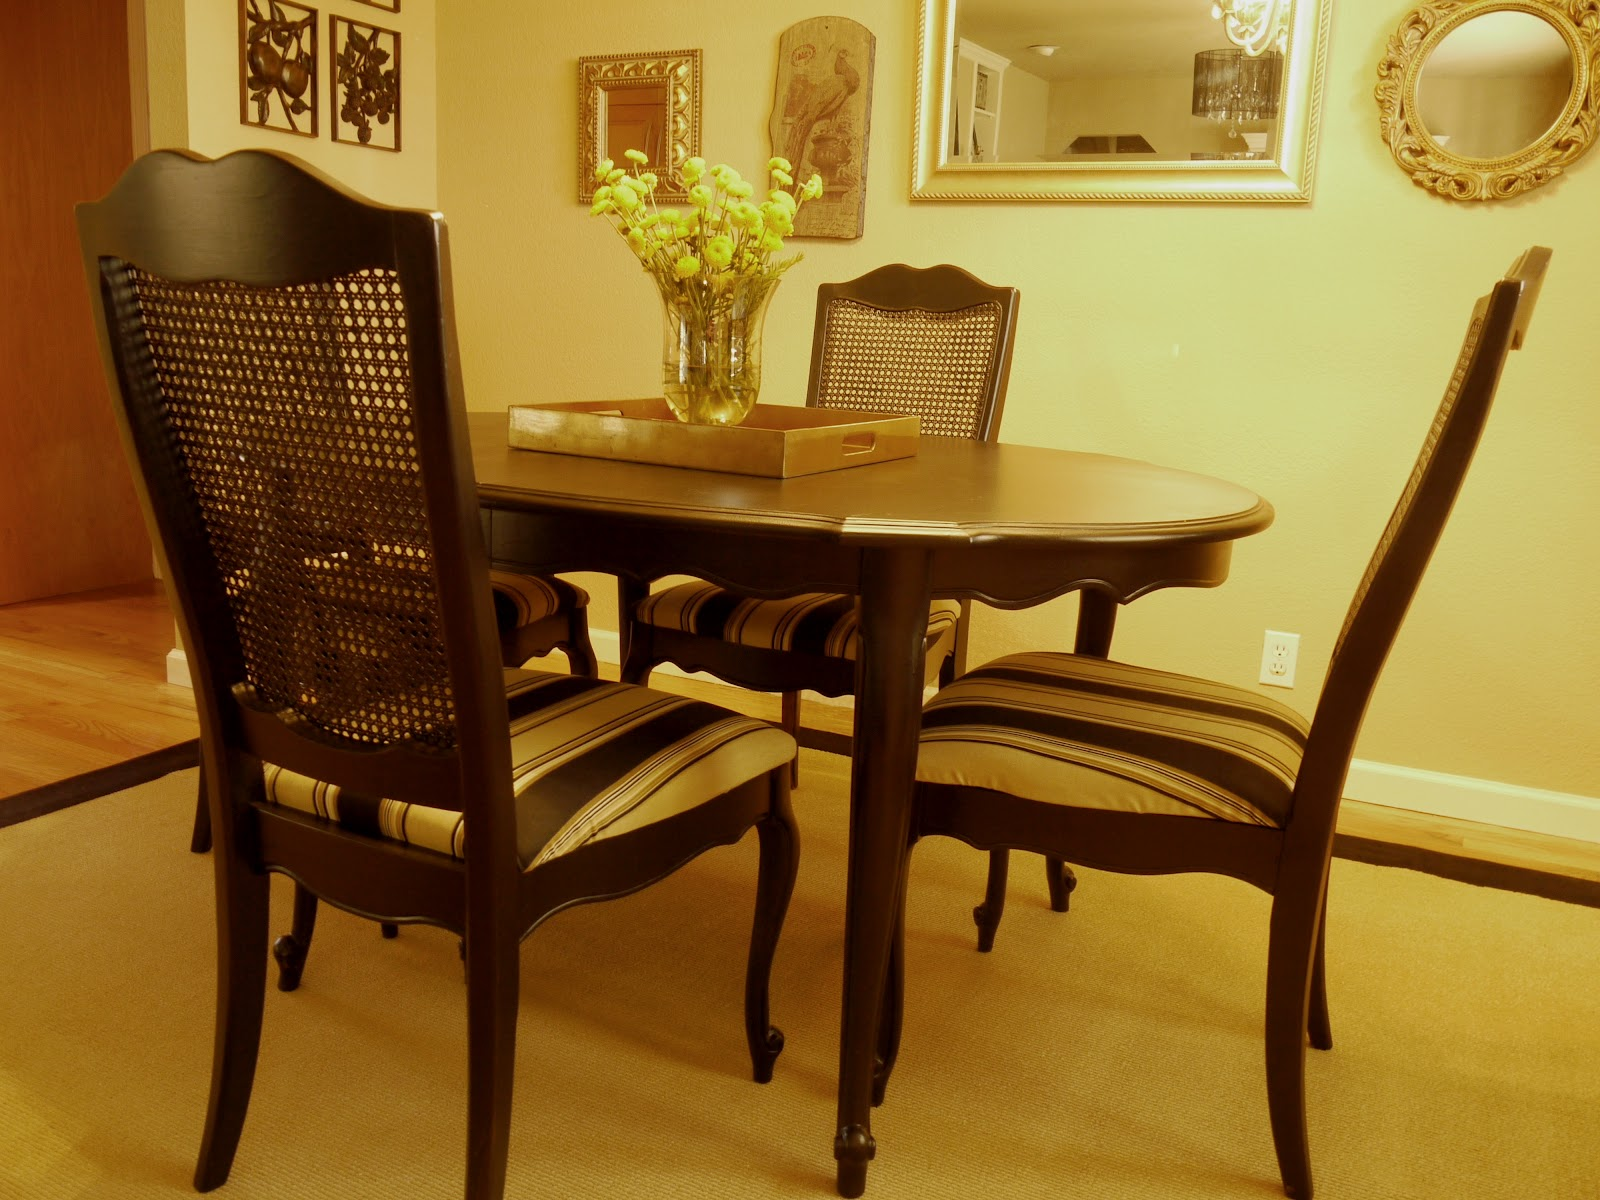 dining table painting a dining table black. Black Bedroom Furniture Sets. Home Design Ideas